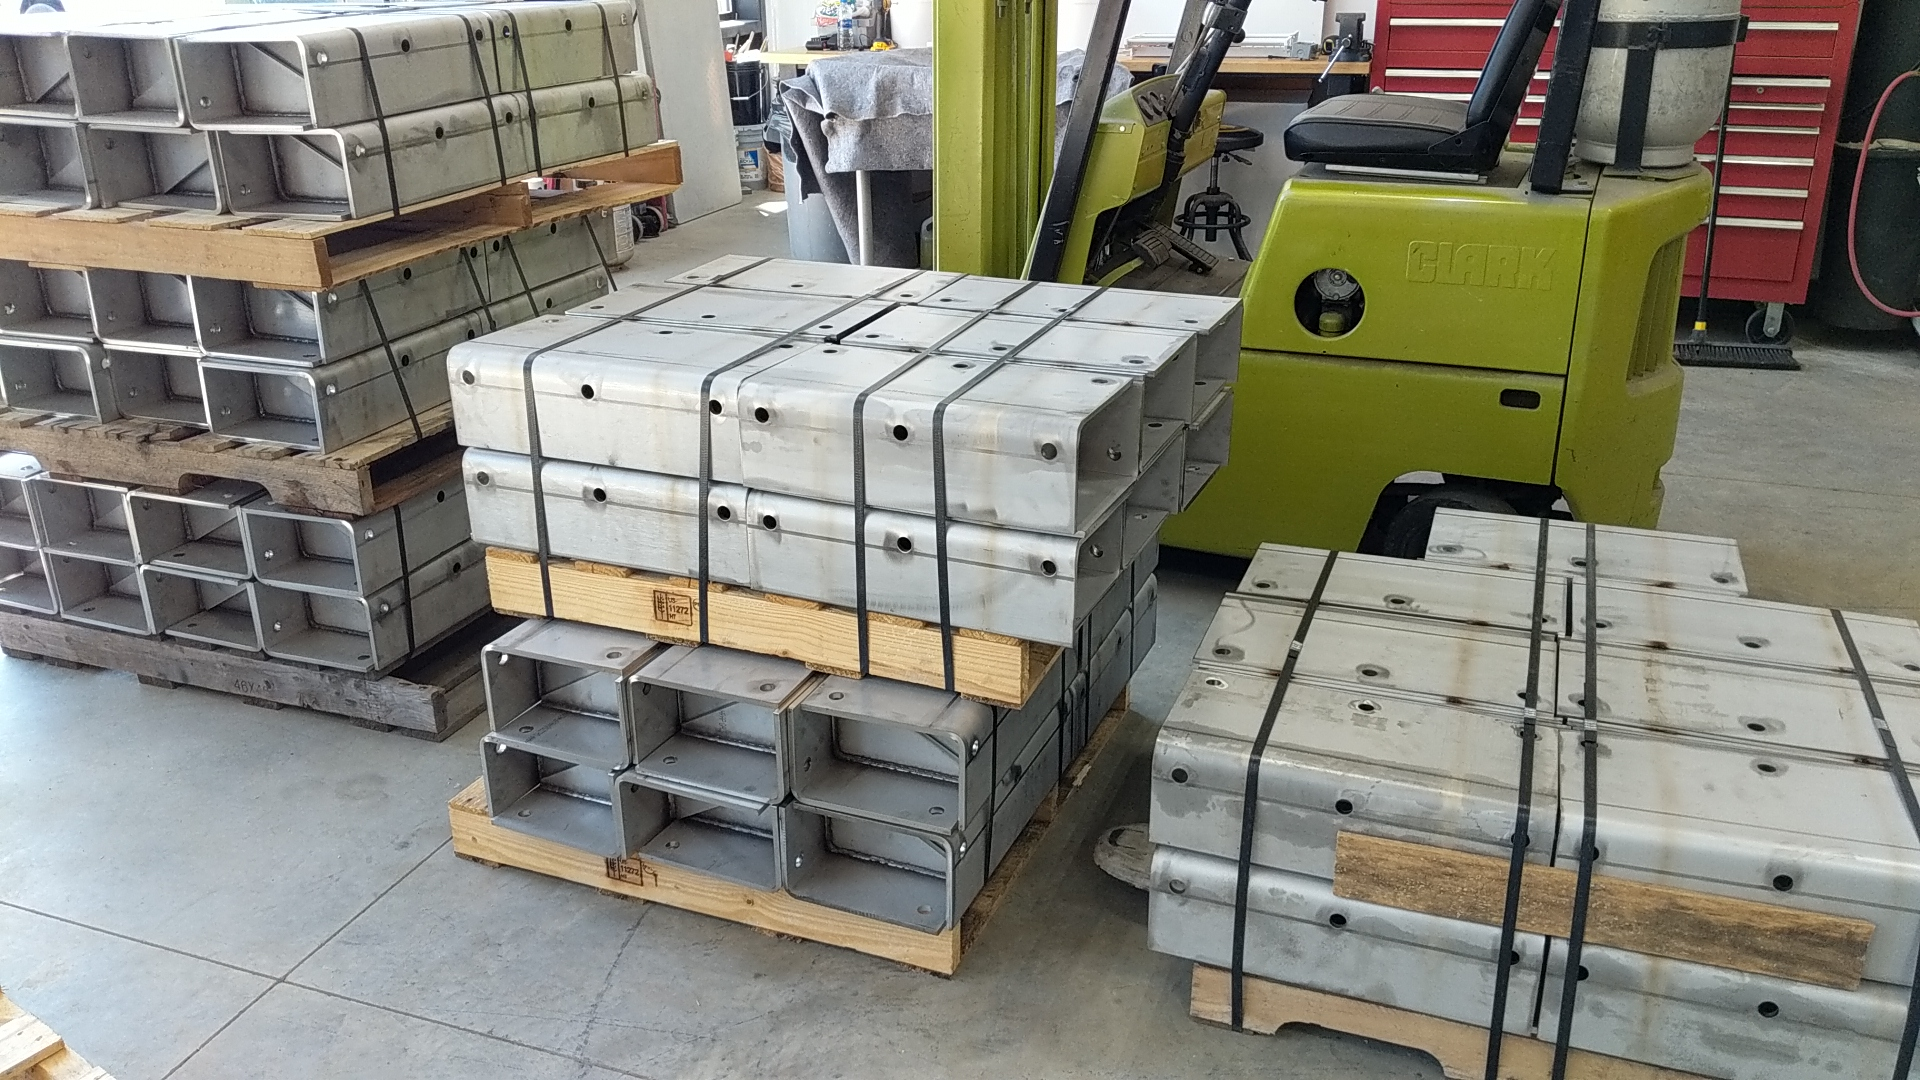 Heavy 304 stainless steel fabricated